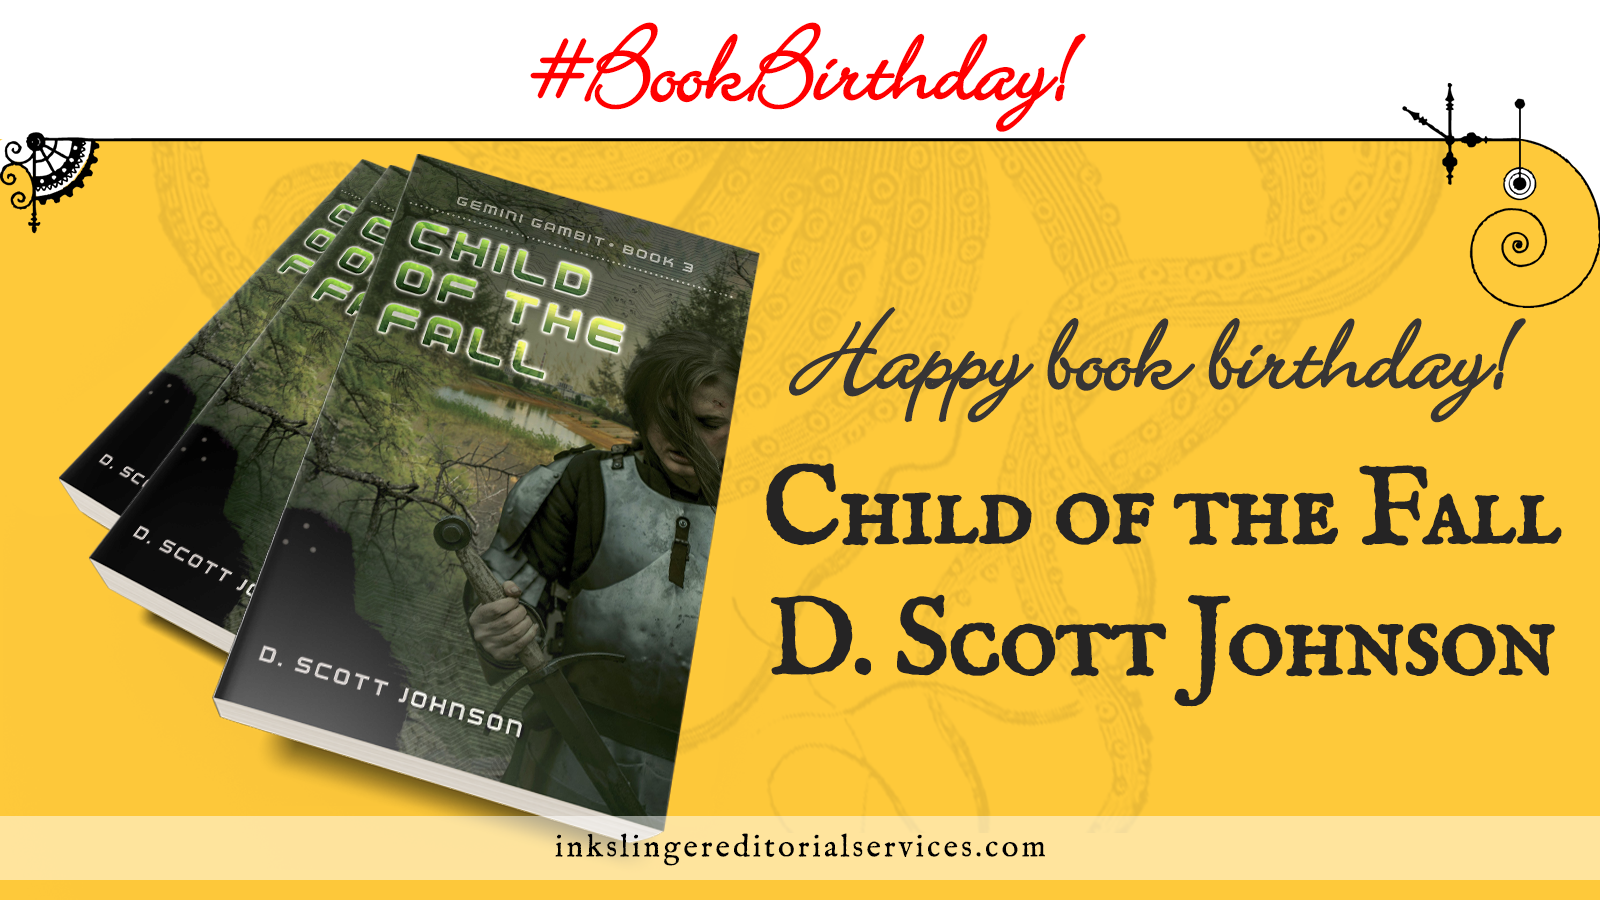 Three stacked Child of the Fall books by D. Scott Johnson on a yellow field with faint tentacles in the background with the hashtag Book Birthday!